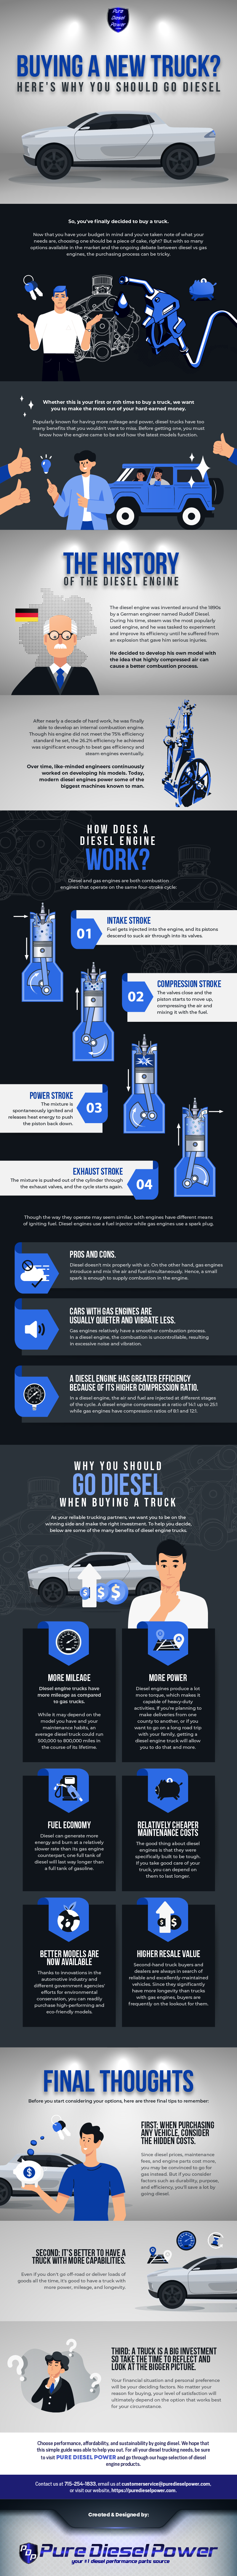 buying-a-new-truck-why-you-should-go-diesel-infographic